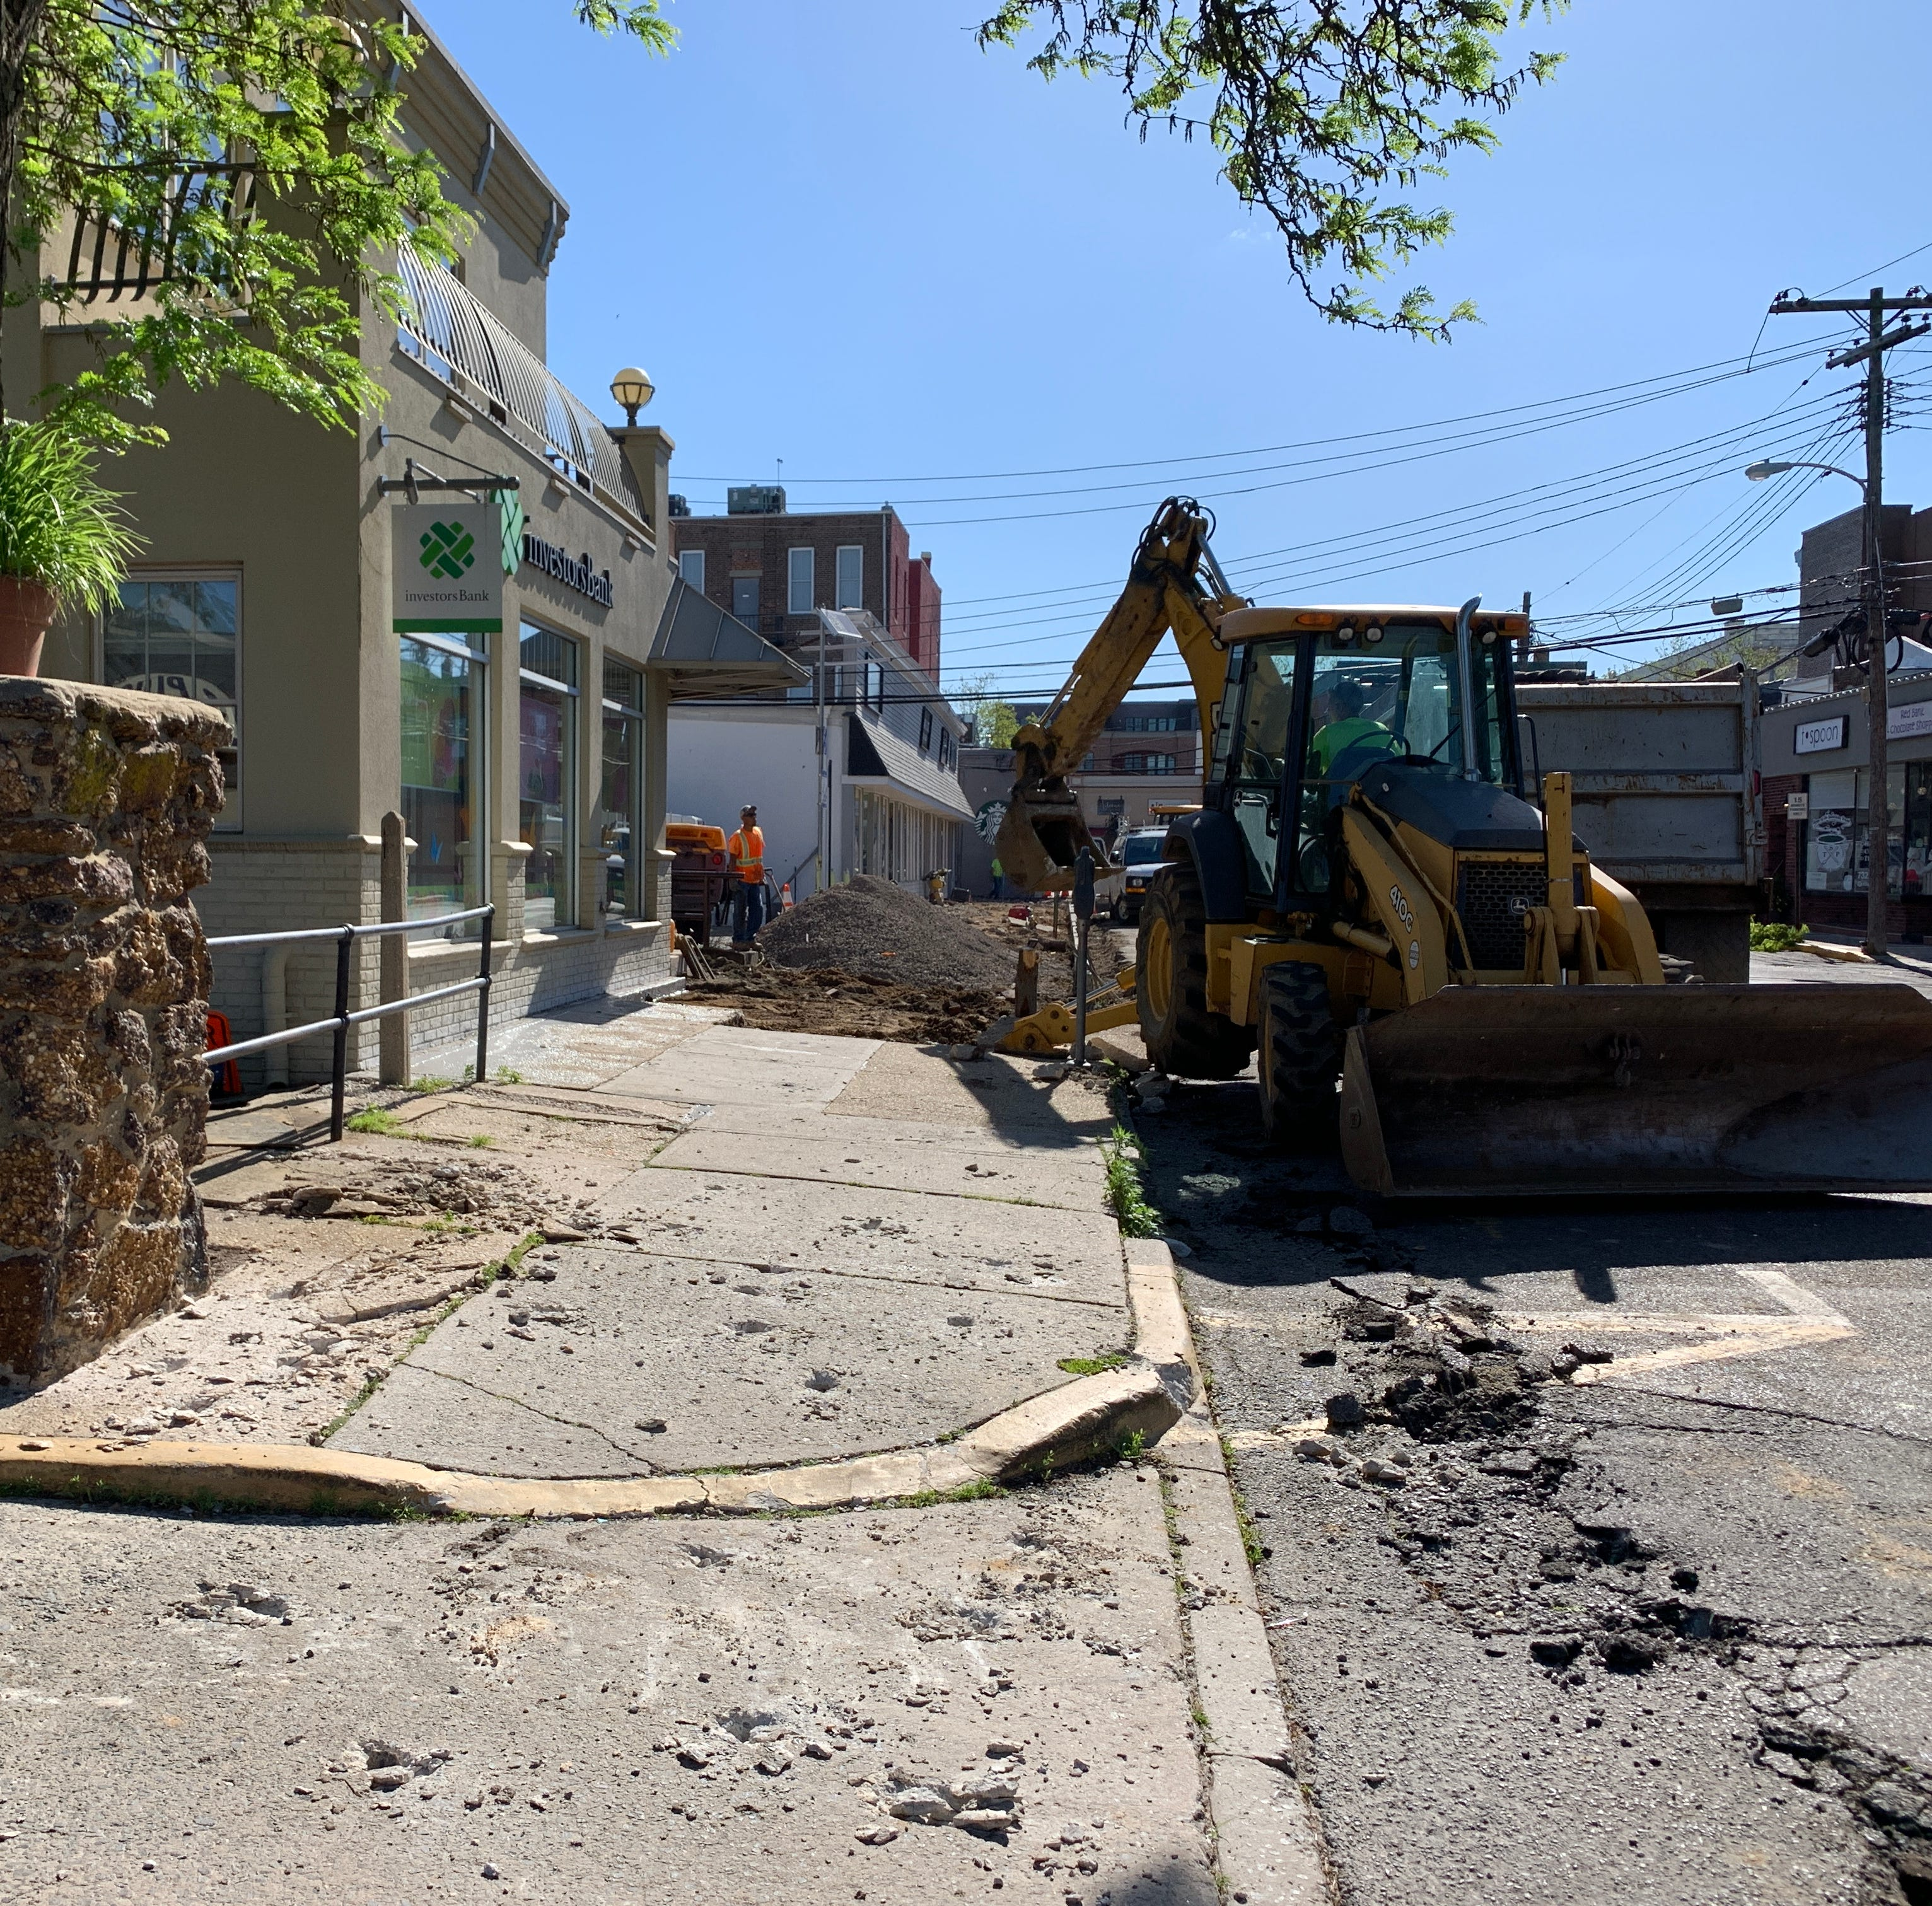 Red Bank getting new sidewalks, lighting, more parking